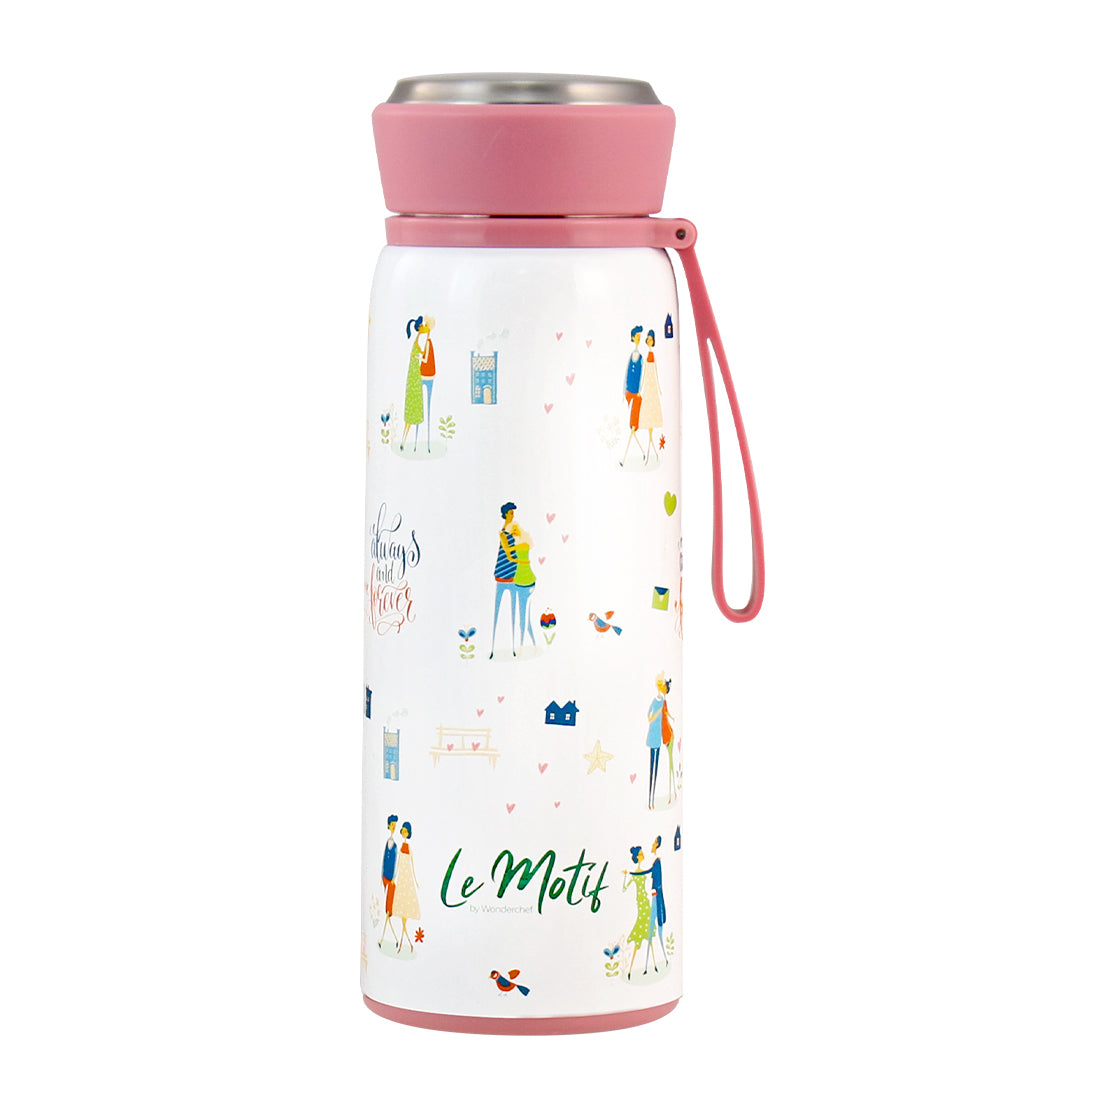 Le-motif_L'amour Stainless Steel Single Wall Water Bottle, 420ml